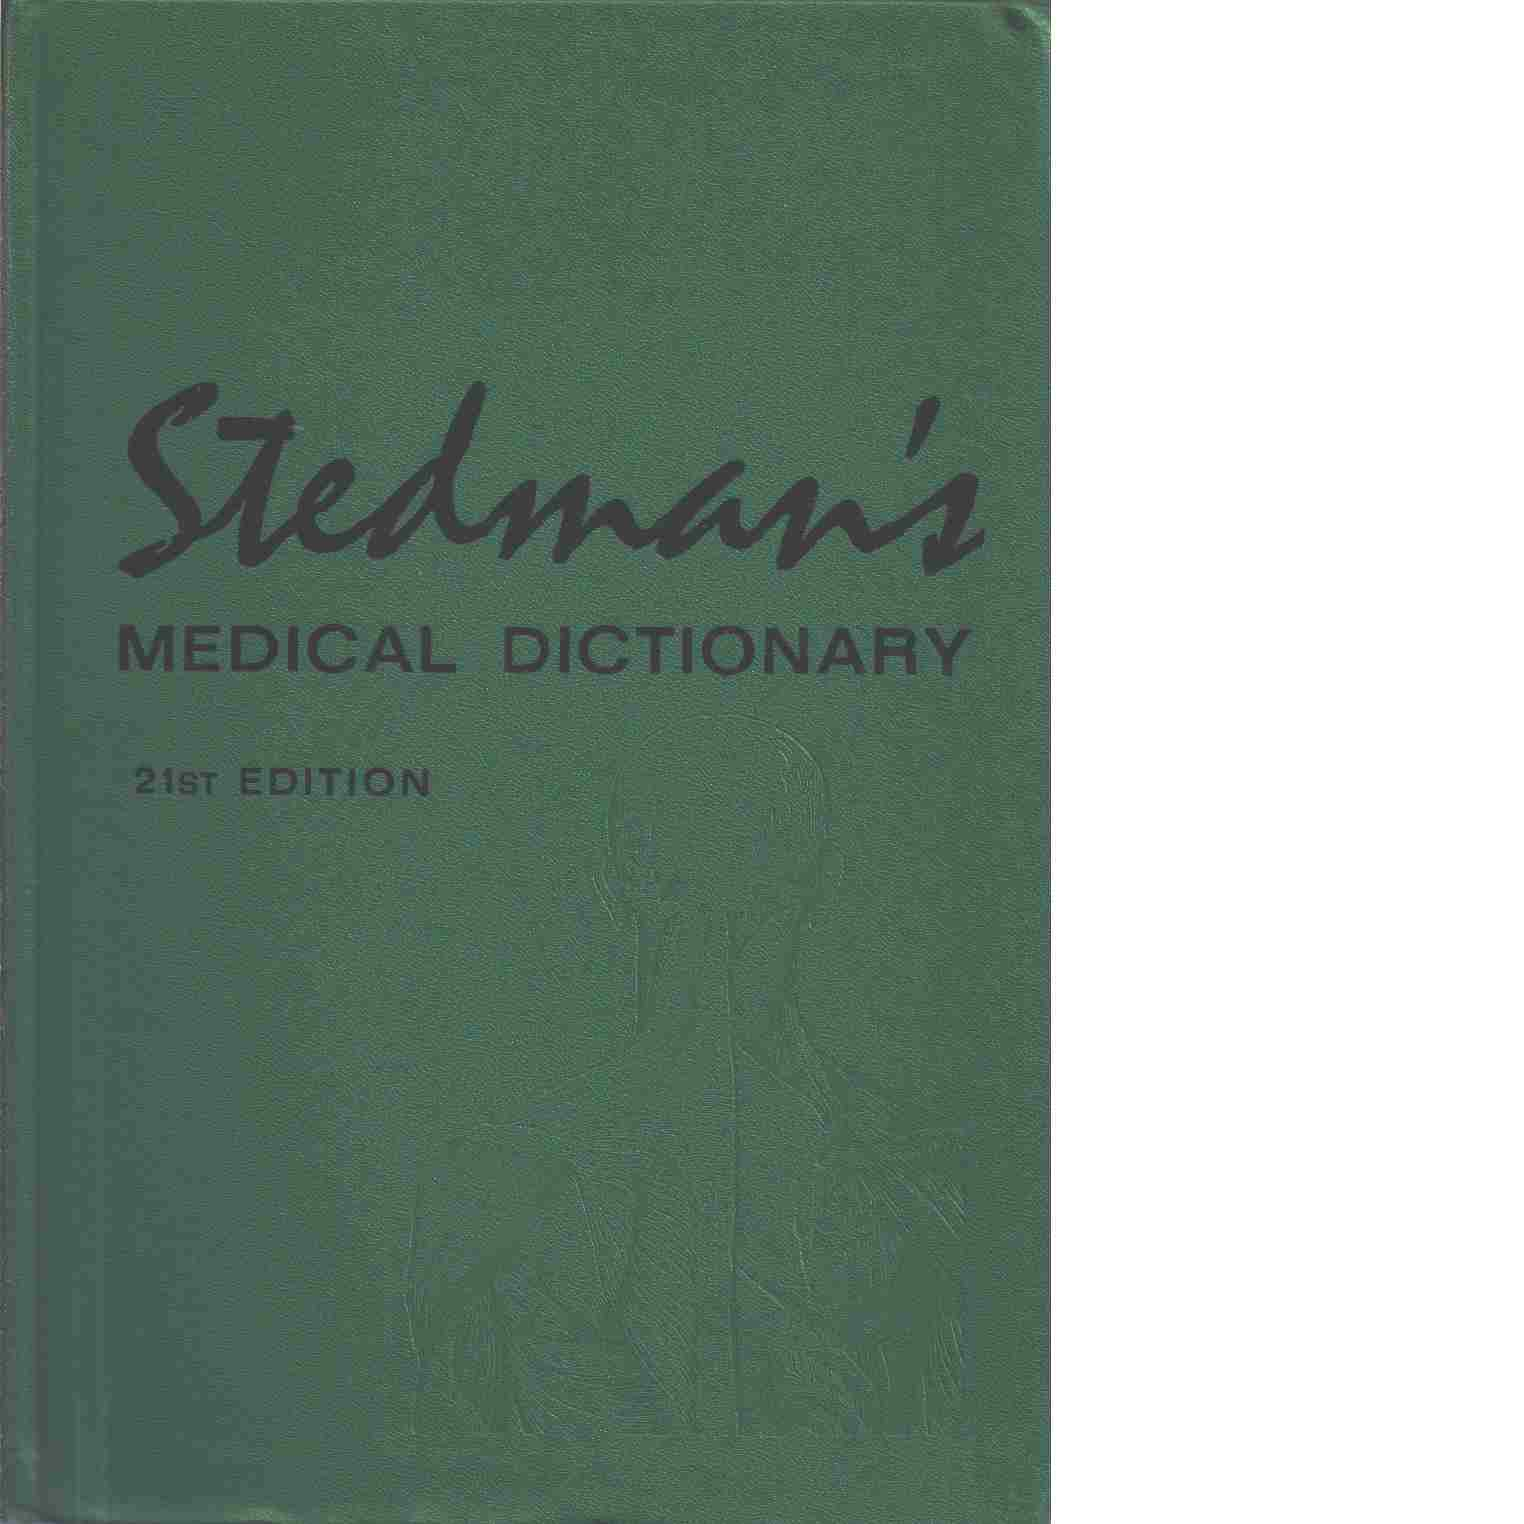 Stedman's Medical dictionary - Red. Stedman, Thomas Lathrop